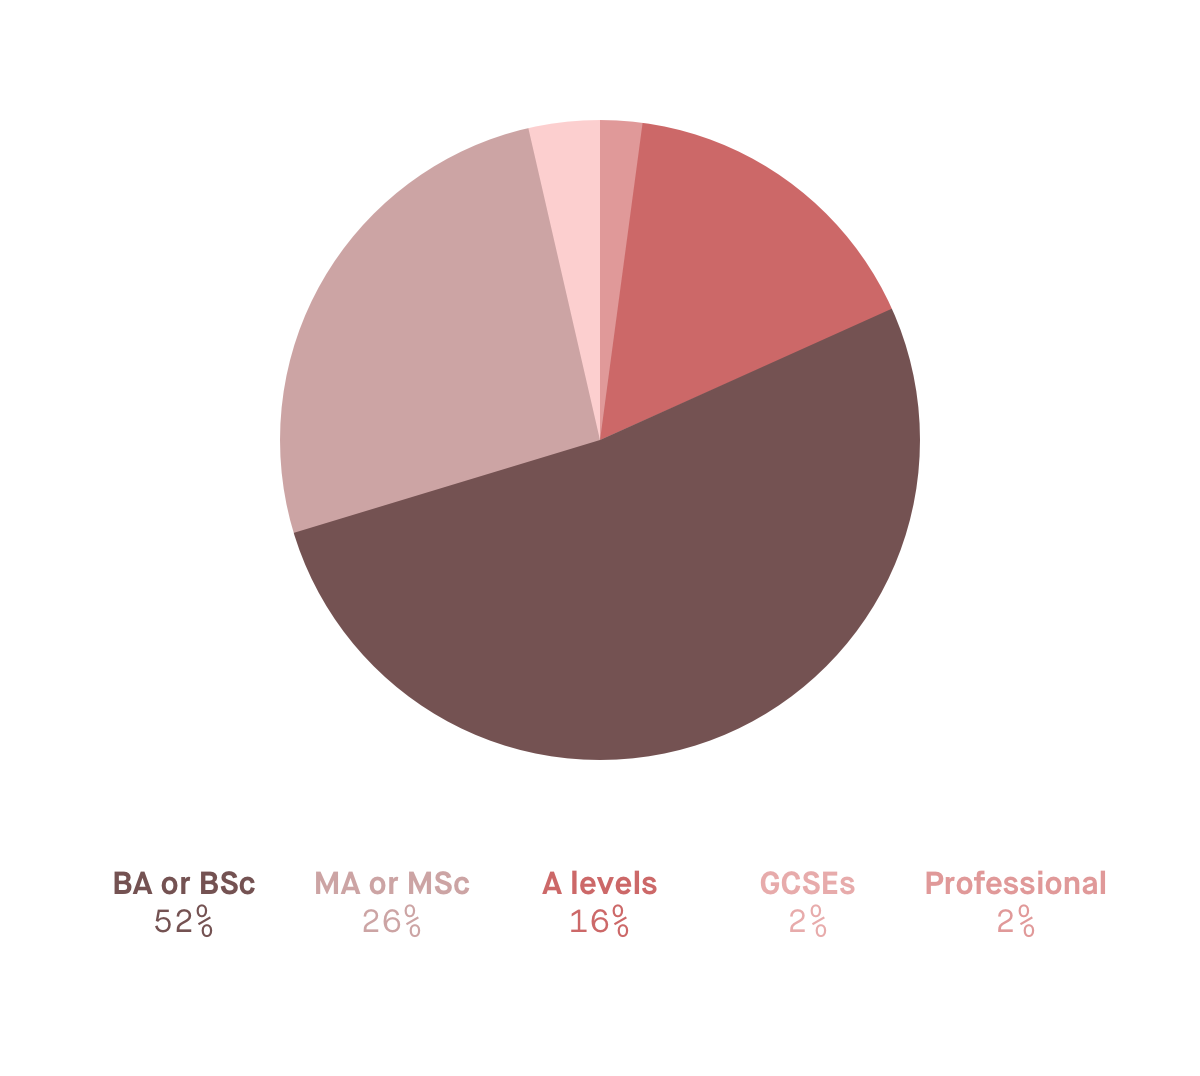 Pie chart showing the highest qualification Monzo employees have. 52% have a BA or BSc.